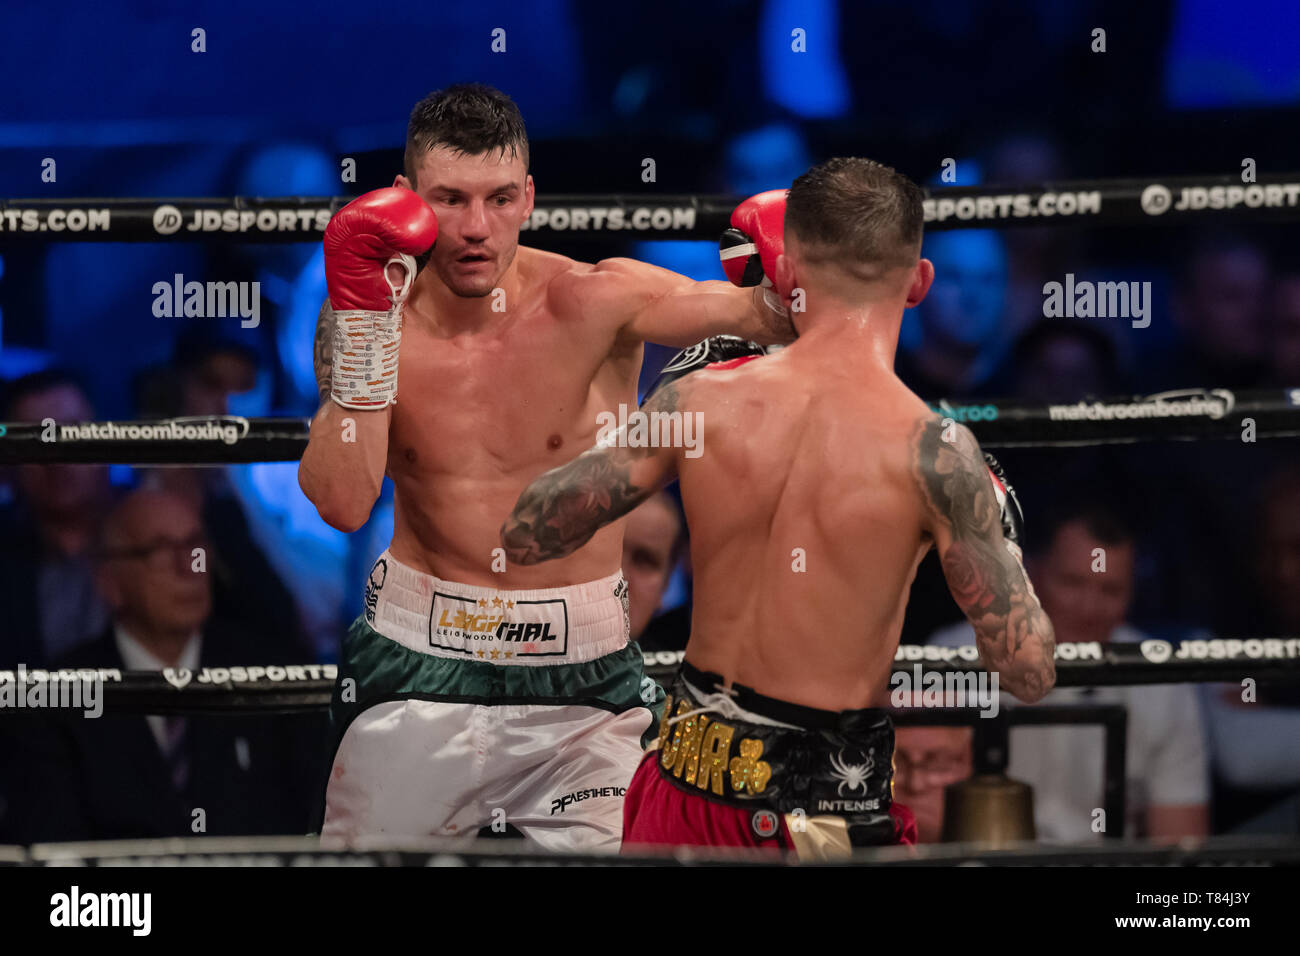 Nottingham, UK. 10th May, 2019. Leigh Wood vs Ryan Doyle - Commonwealth Featherweight Championship during Matchroomboxing presents JD NXTGEN Fight Night at Motorpoint Arena on Friday, 10 May 2019. Nottingham England. Credit: Taka G Wu/Alamy Live News - Stock Image